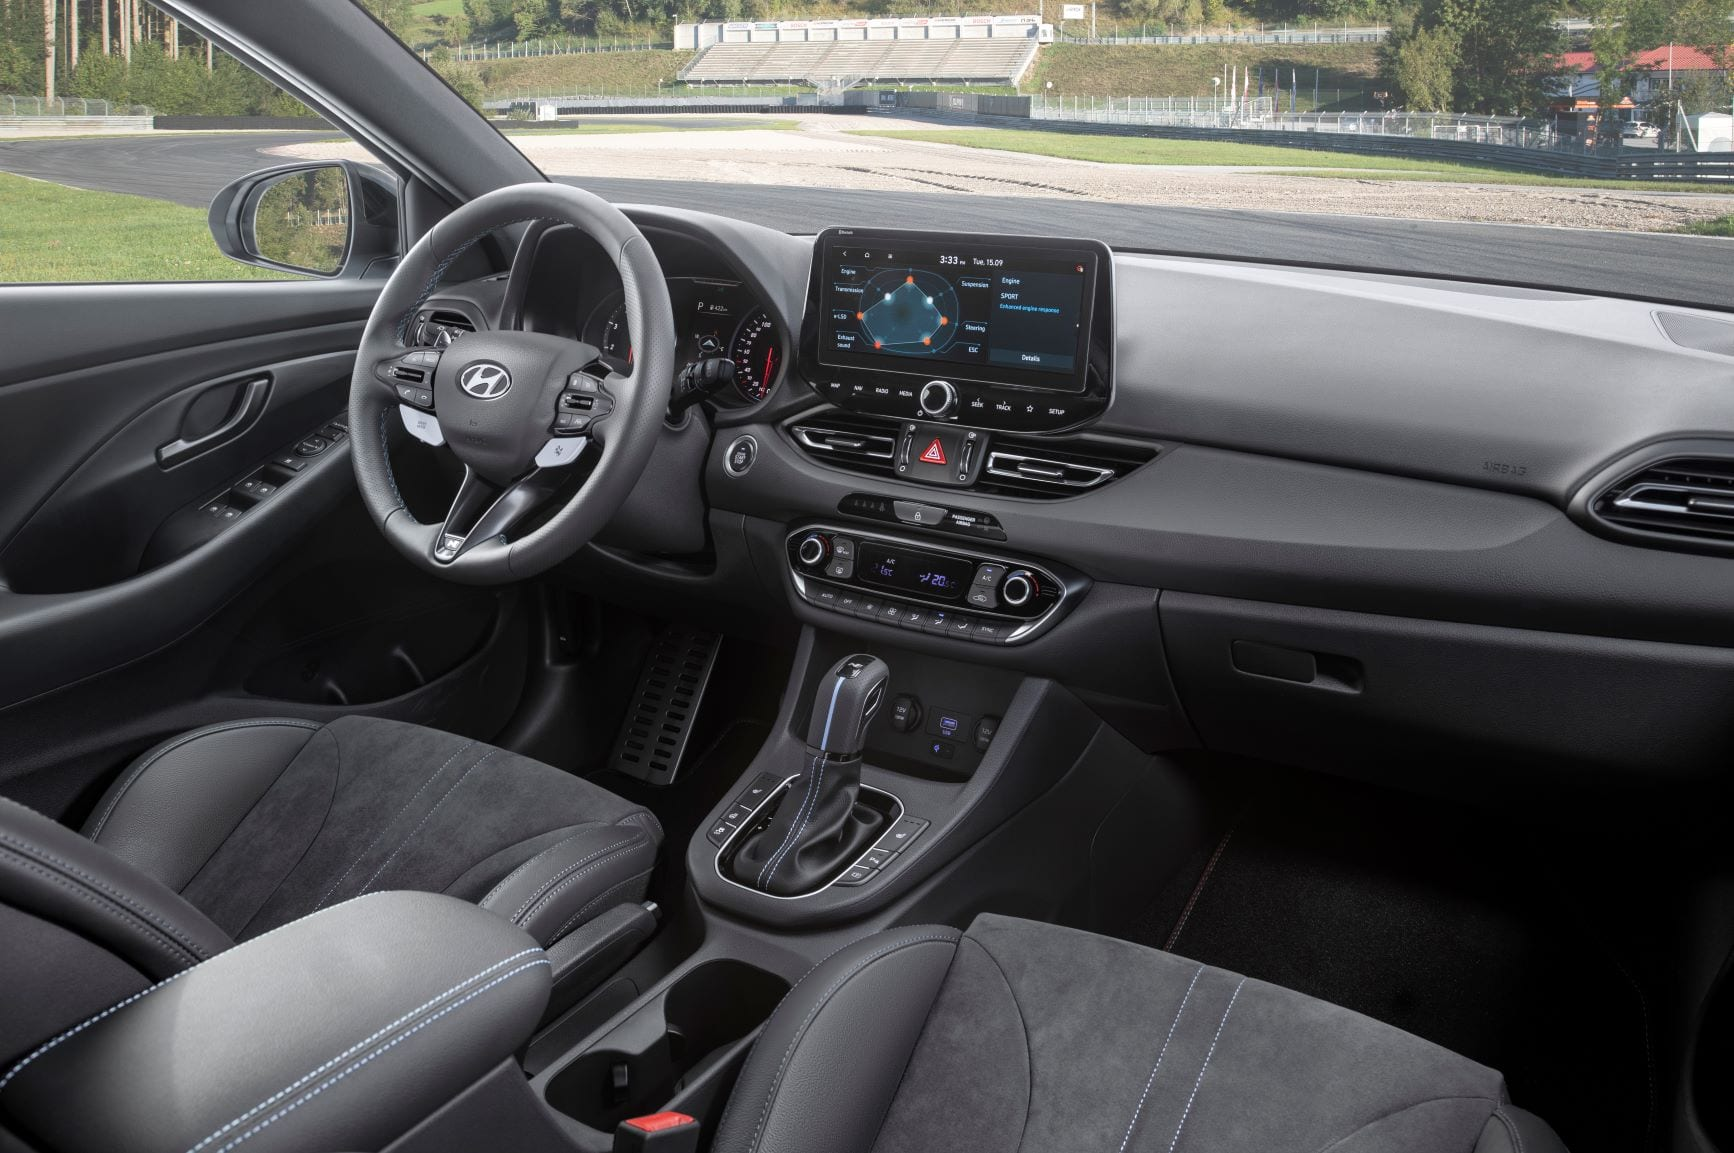 The interior of the Hyundai i30 N with the dual clutch gear shifter.